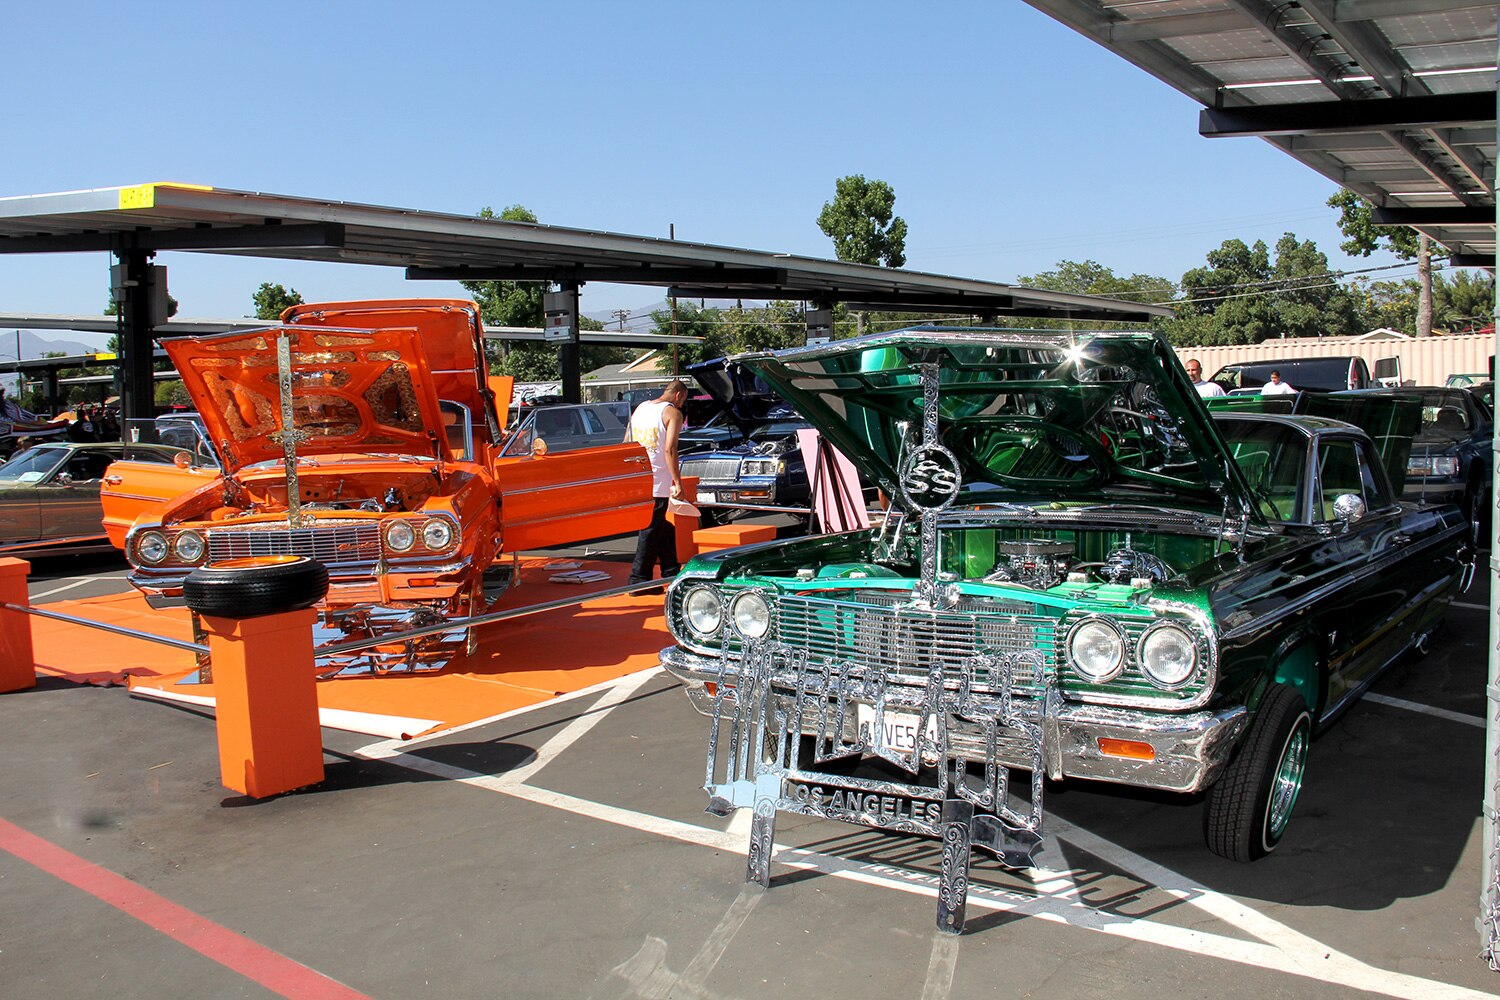 oldies-car-show-and-concert-chevrolet-lowriders-promo